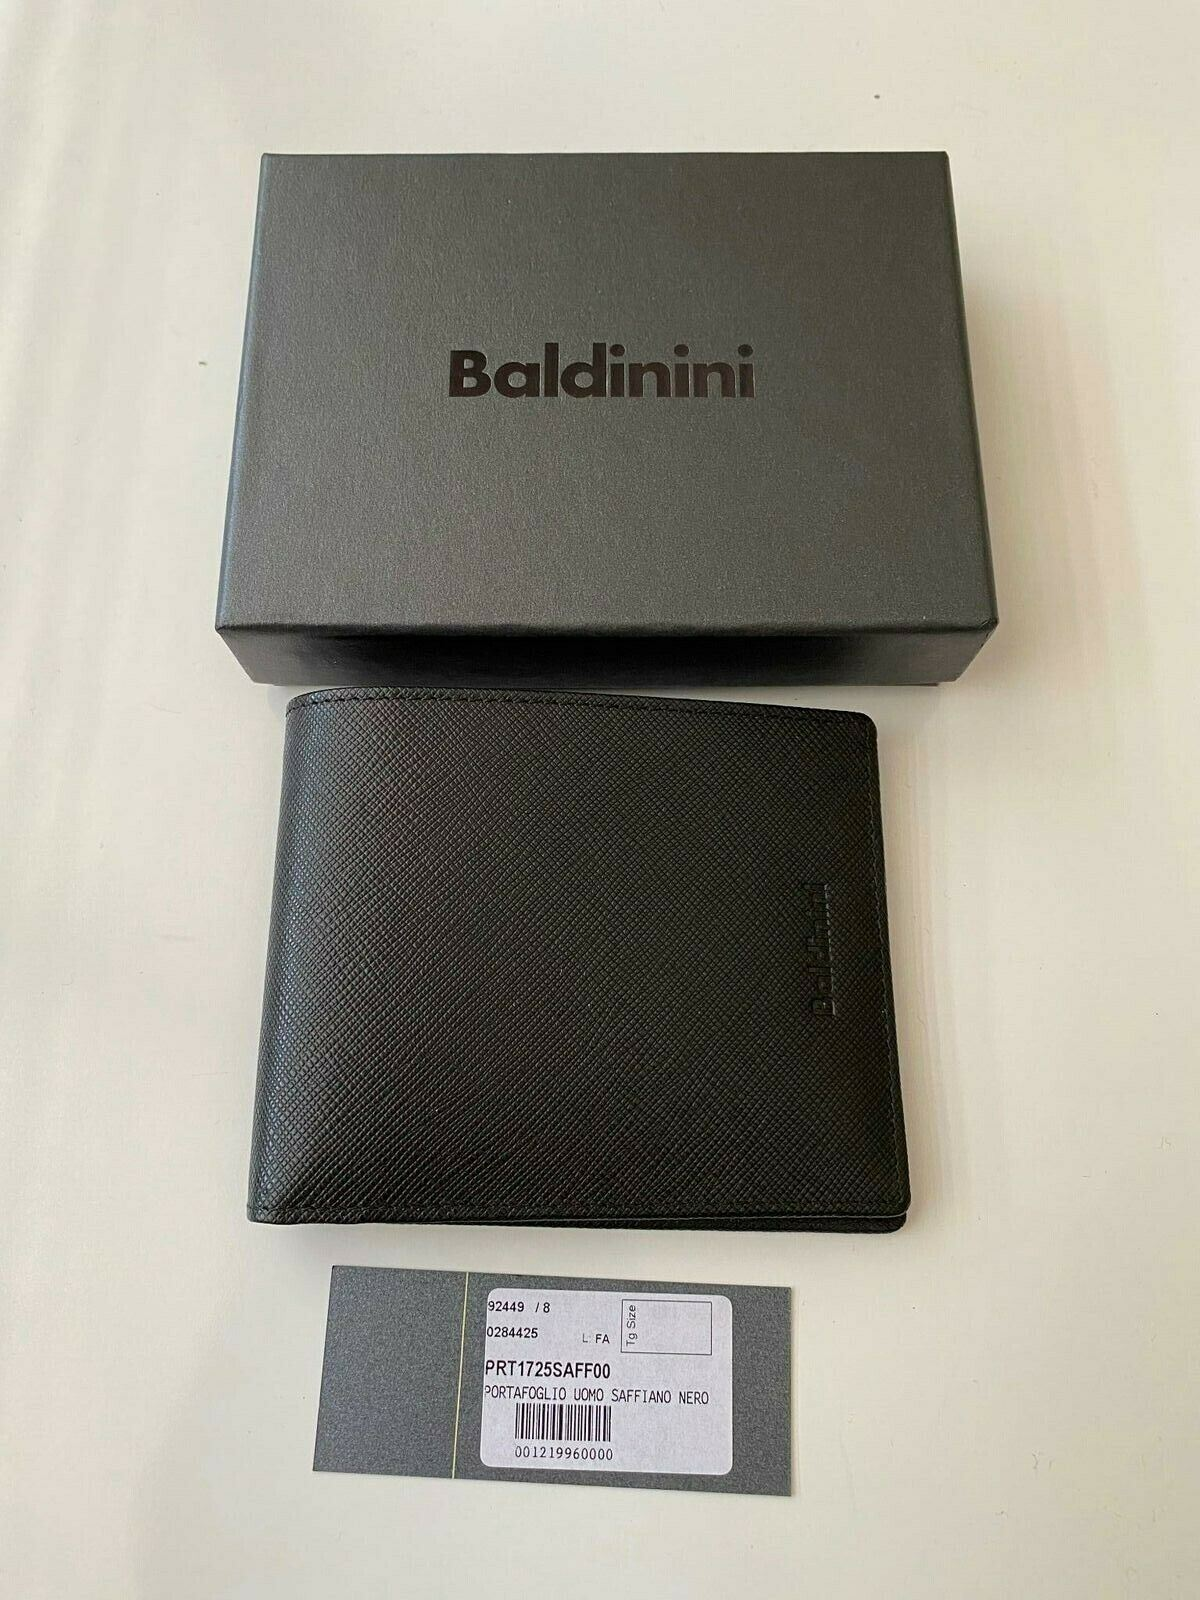 NIB Baldinini Mens Saffiano Leather Wallet Black PRT1725SAFF00 Italy